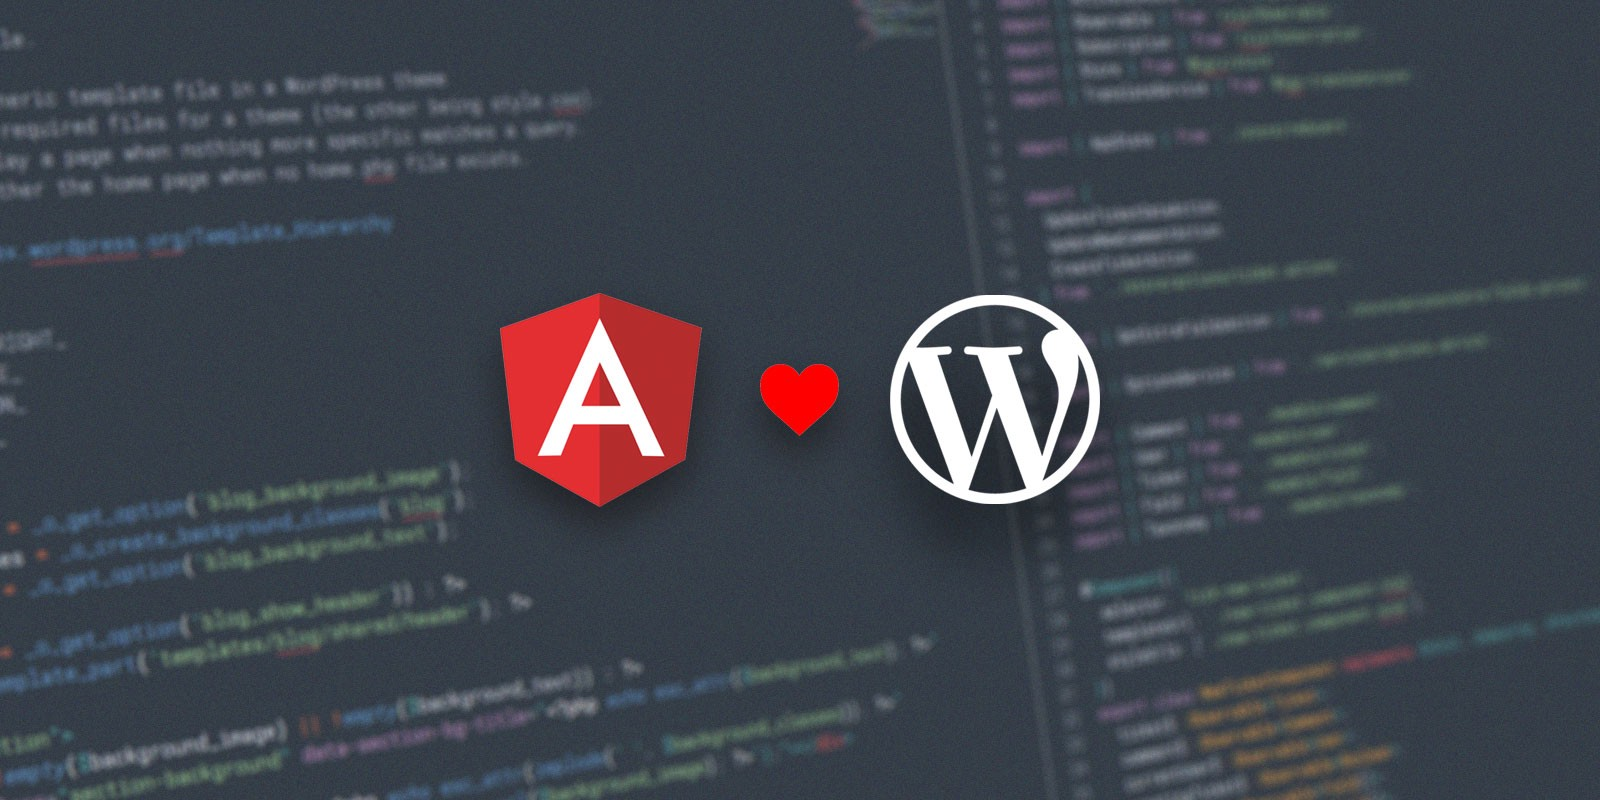 Connecting Angular 6 to WordPress - ITNEXT